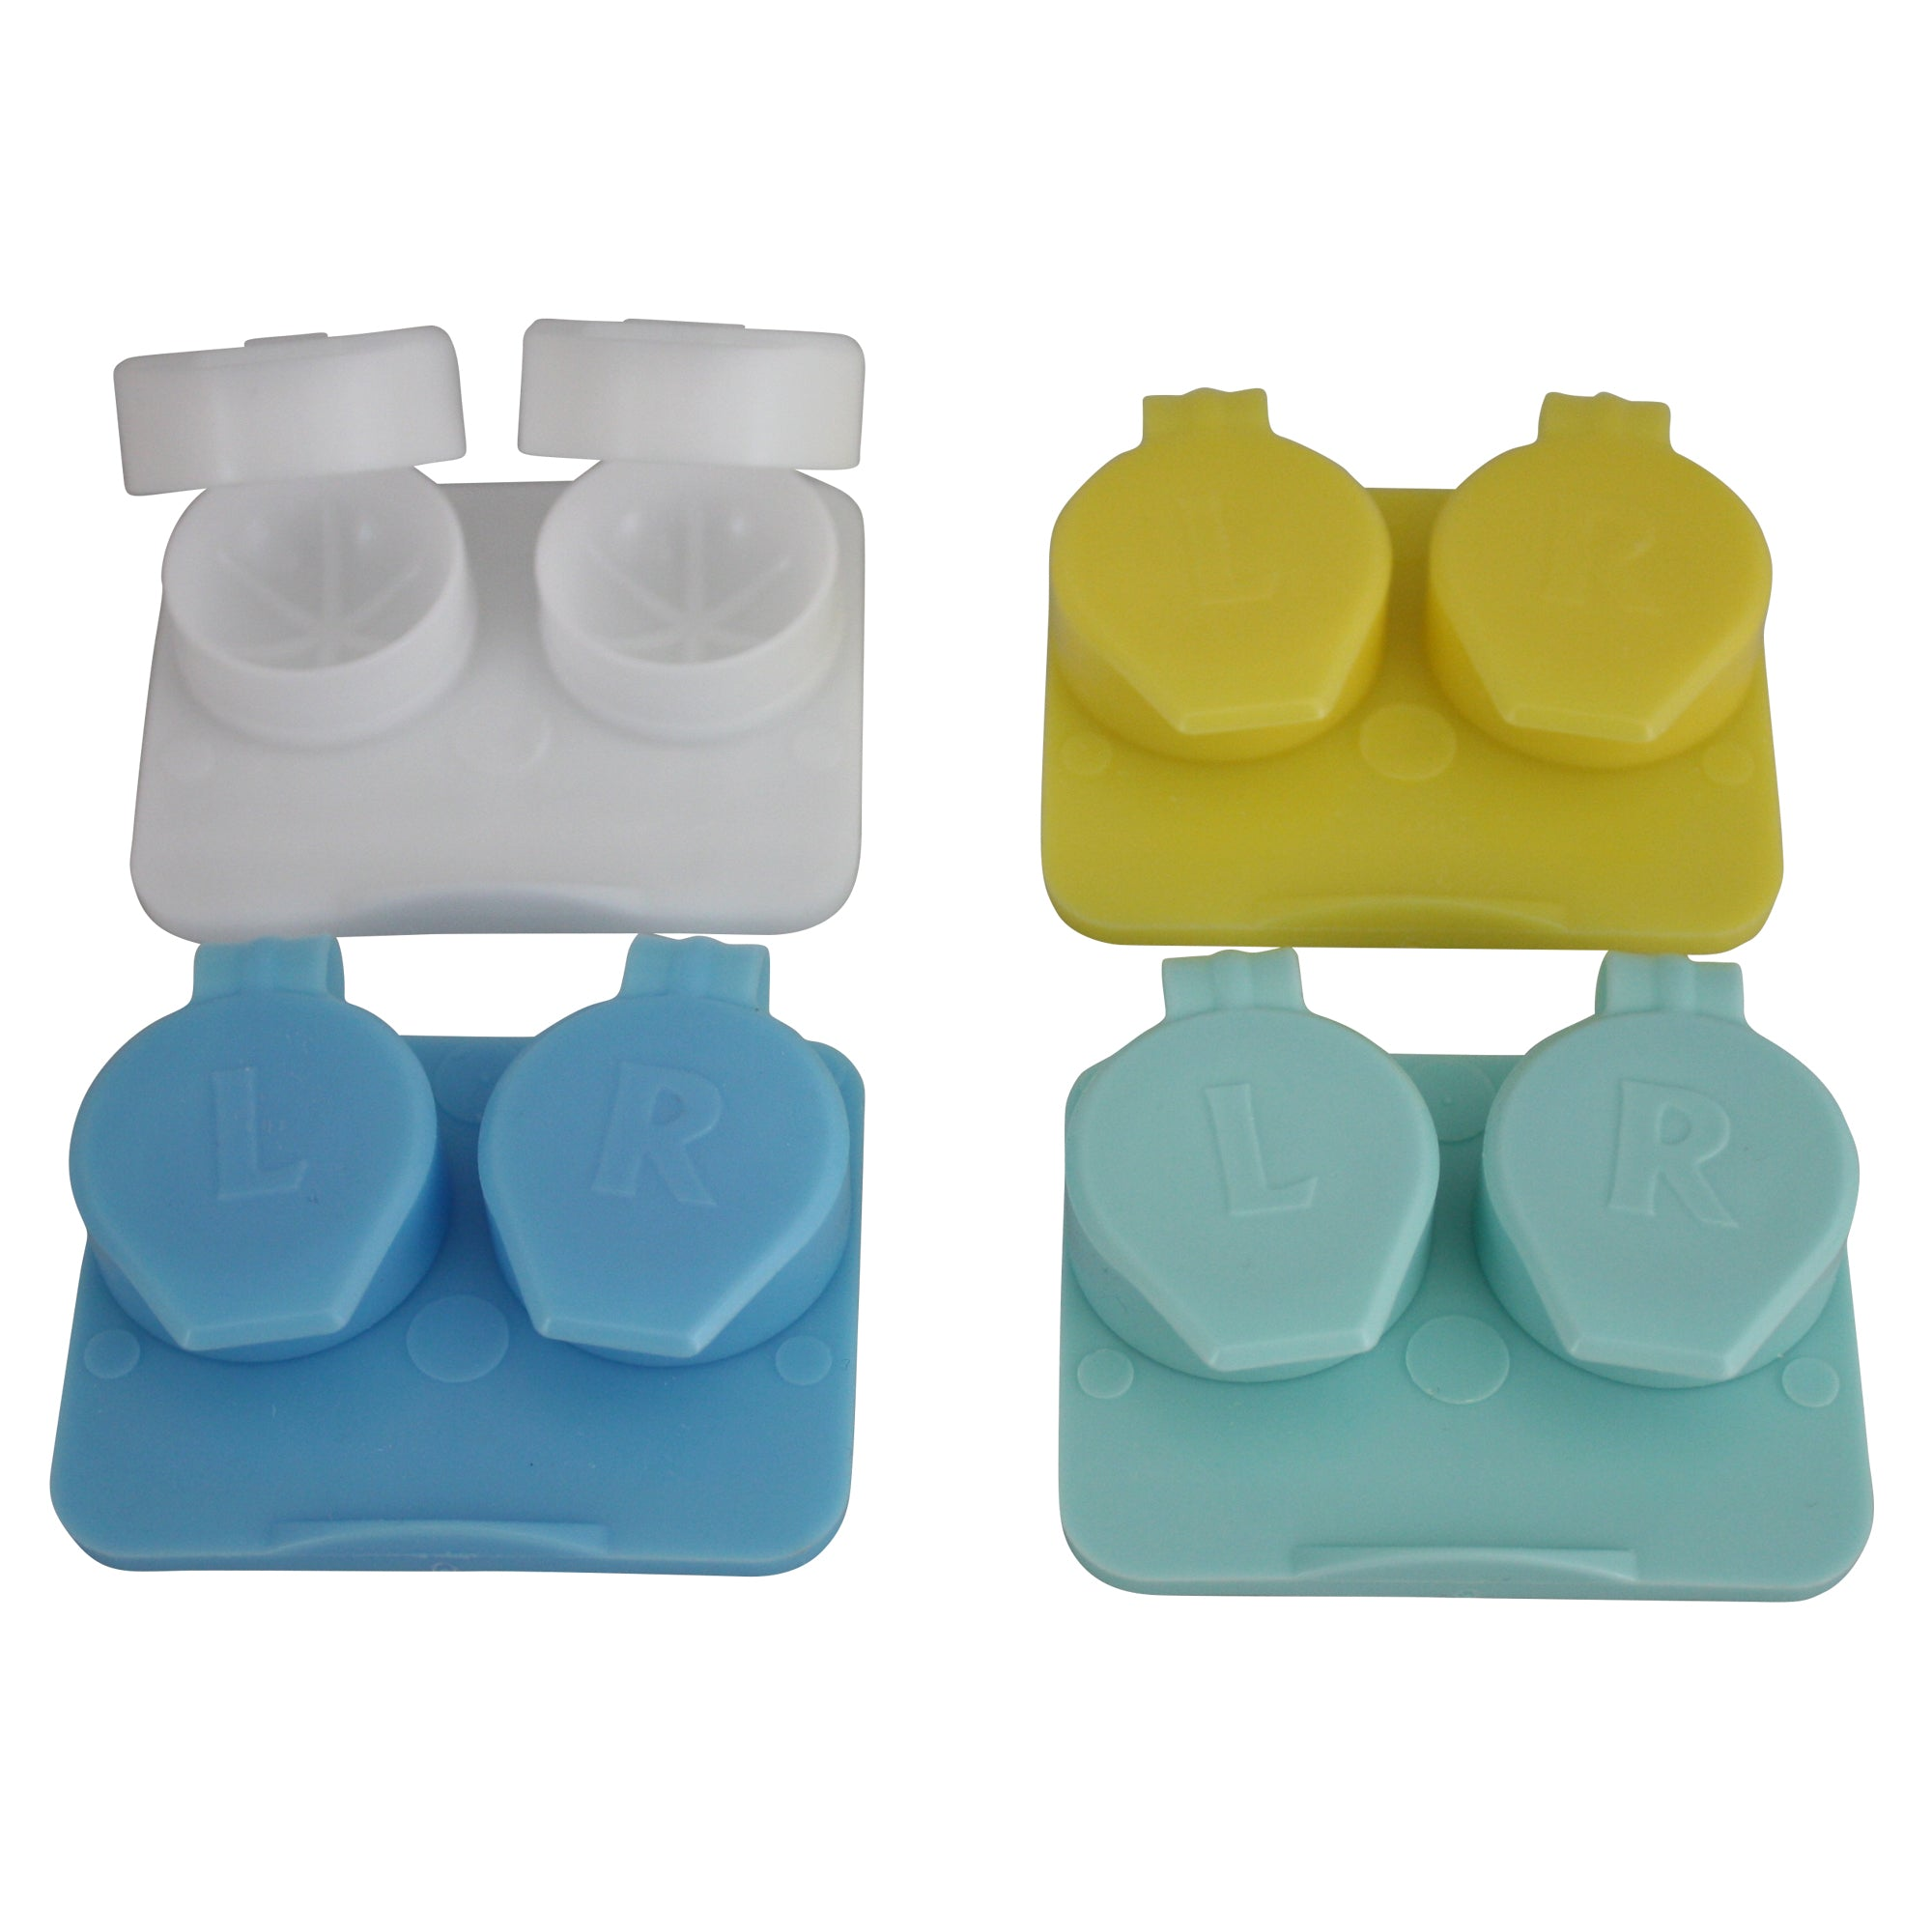 Pro-Optics Flip Top™  Contact Lens Cases (CL50)